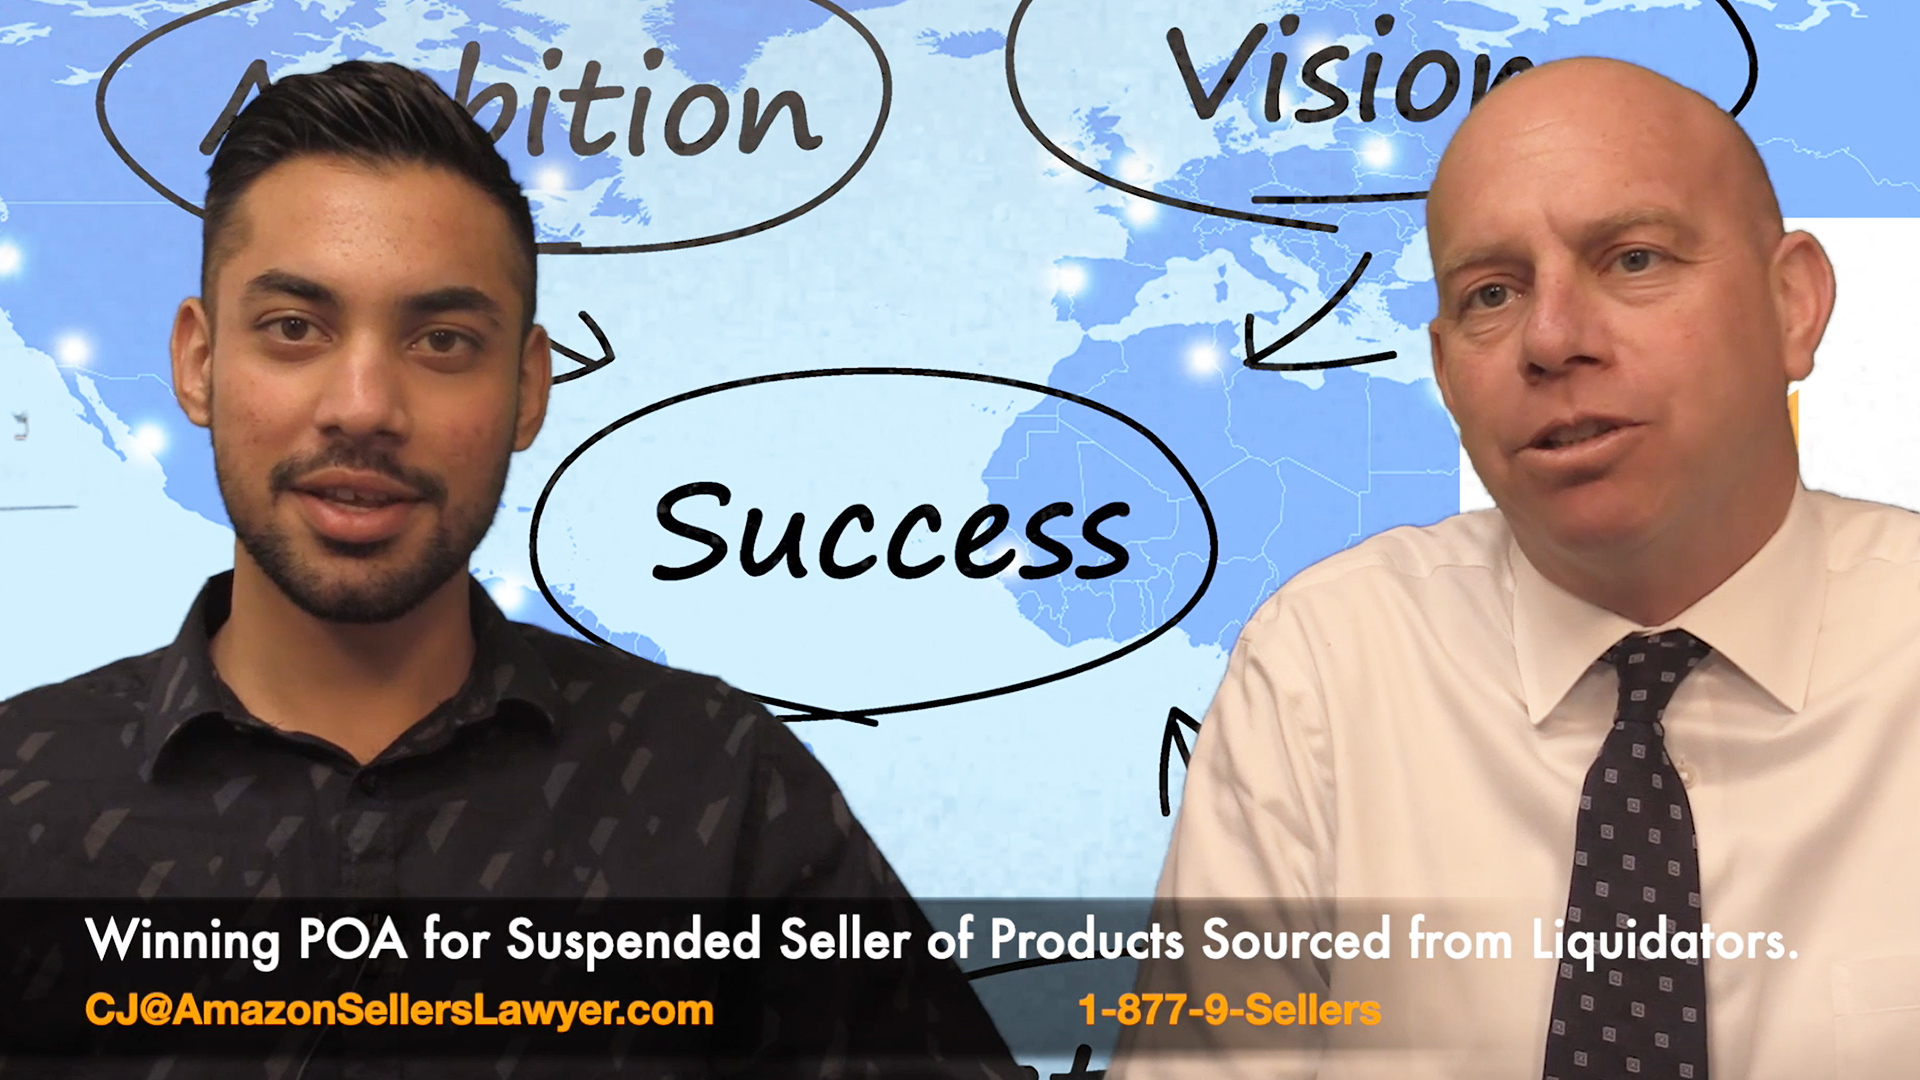 How We Helped a Suspended Amazon Seller Who Sources Products From Liquidators